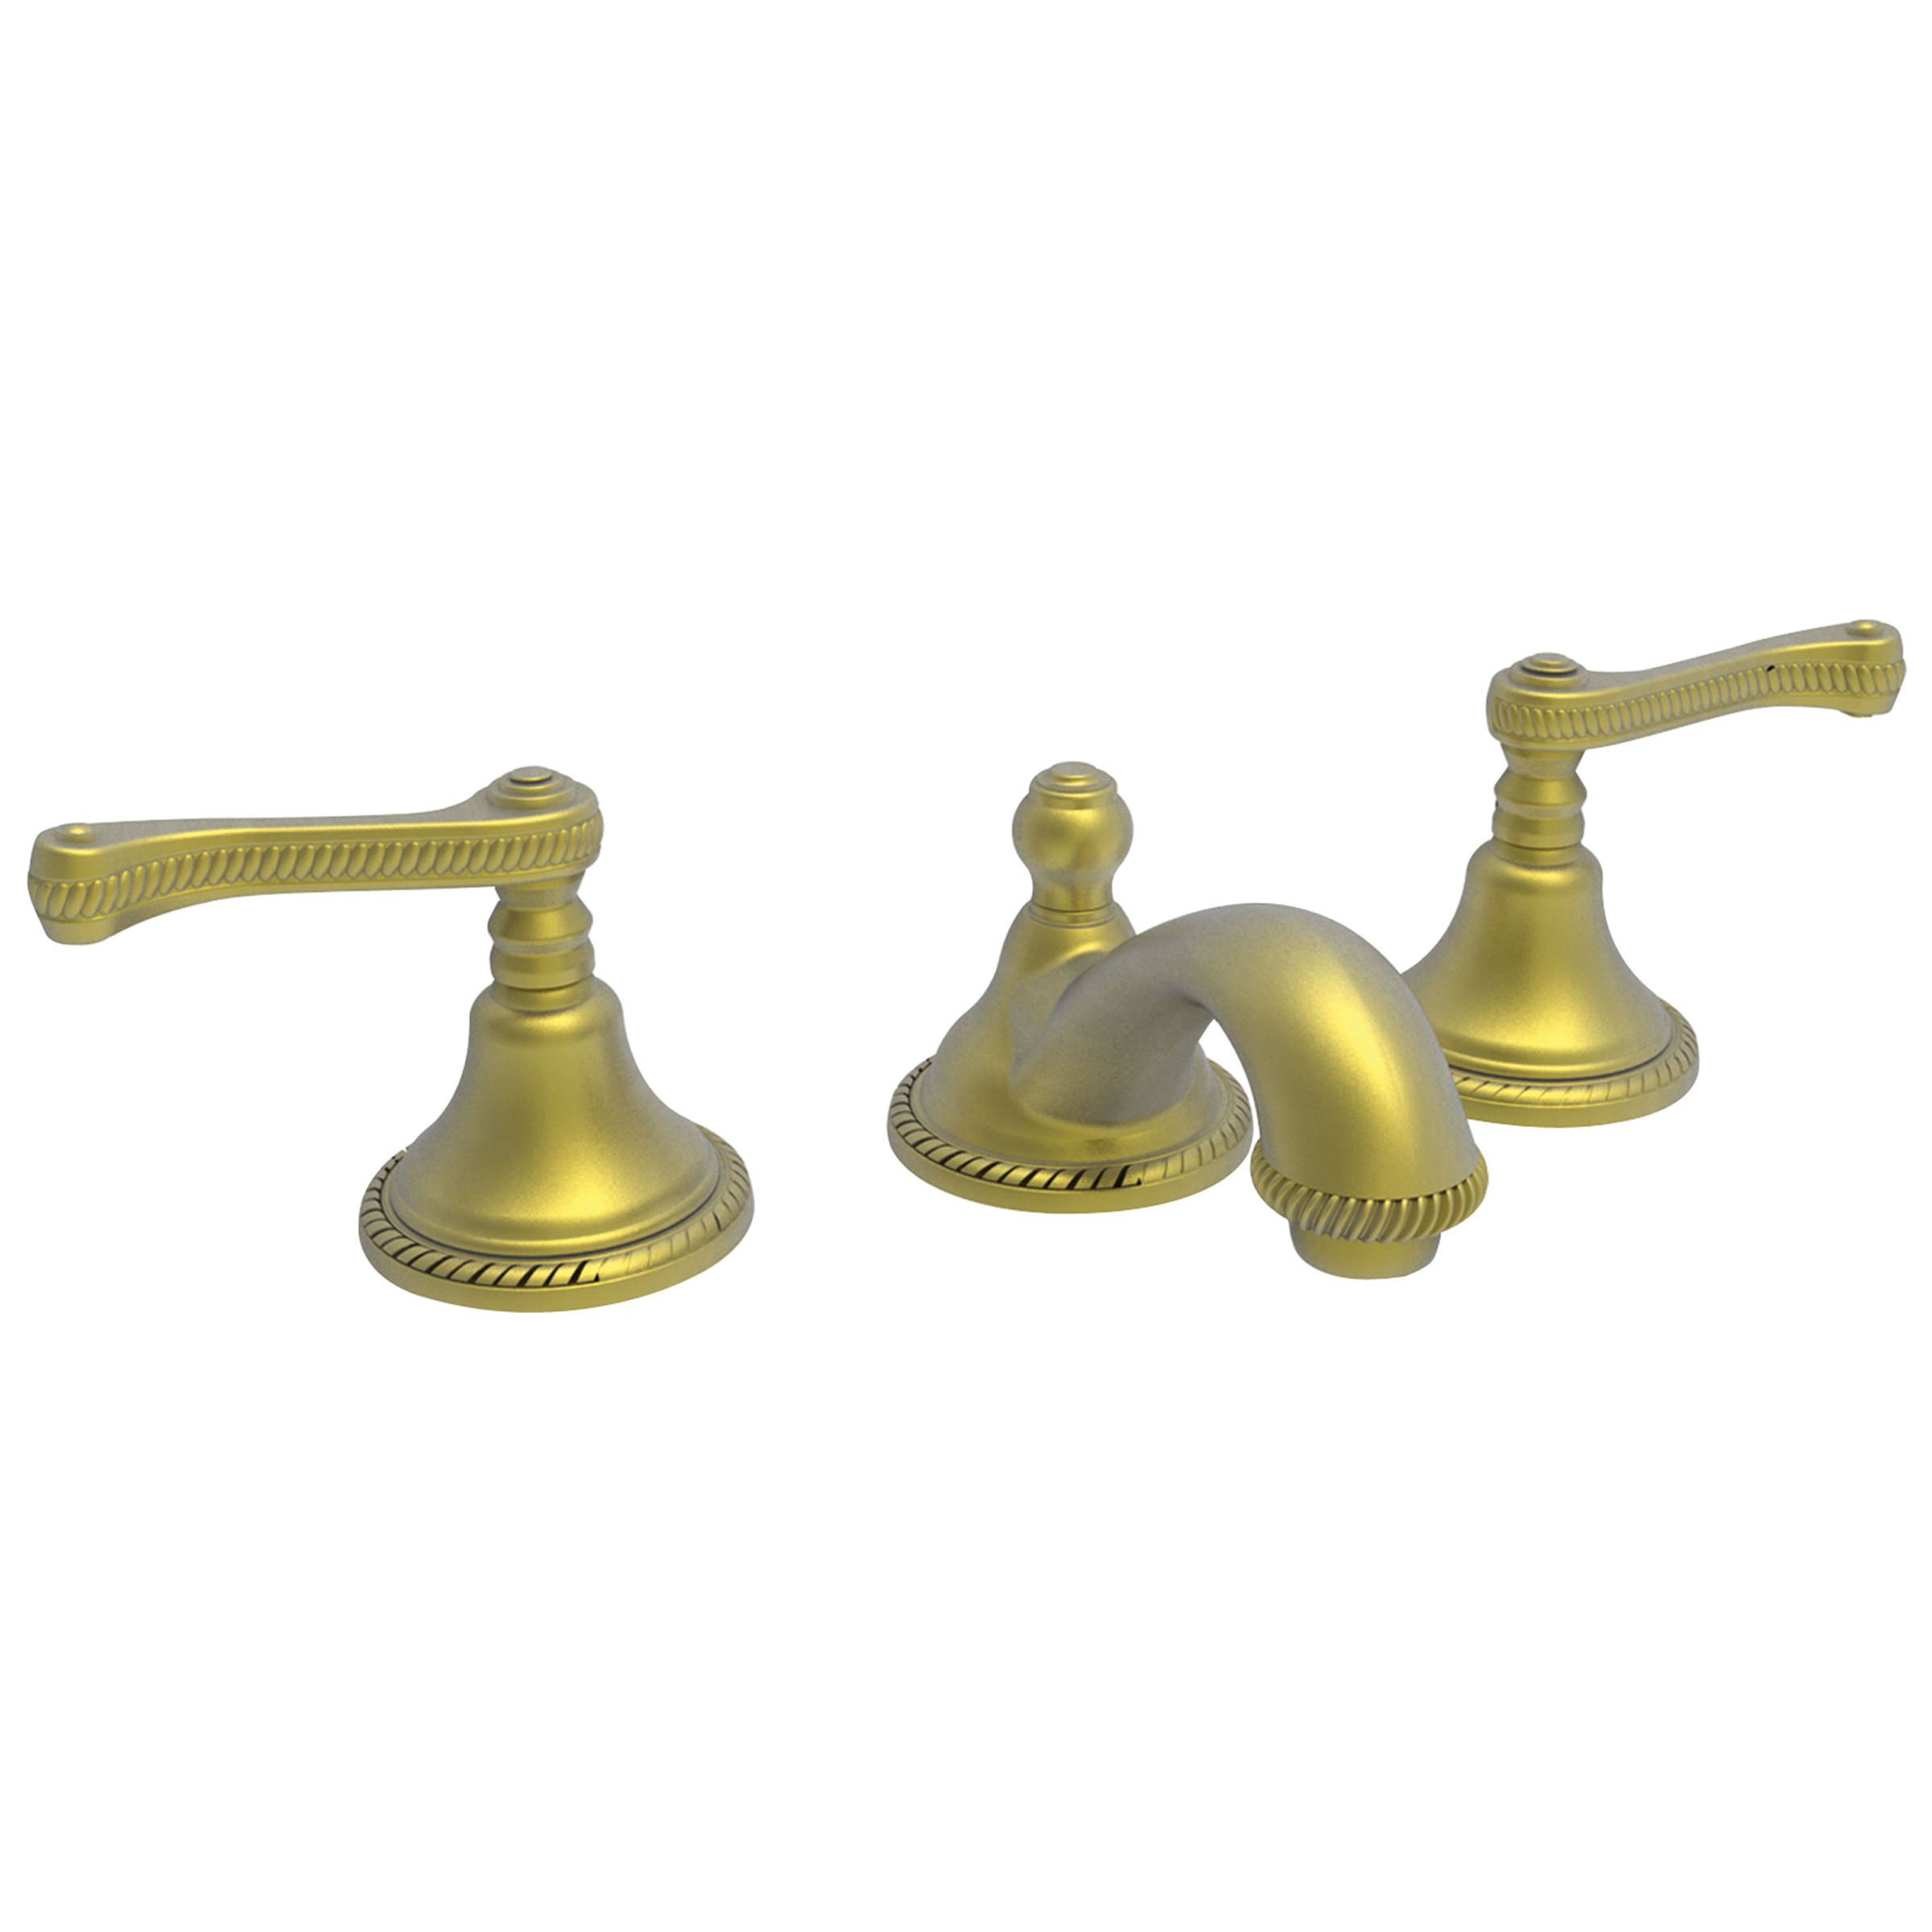 Newport 980 lavatory faucet newport brass faucets Newport brass bathroom faucets